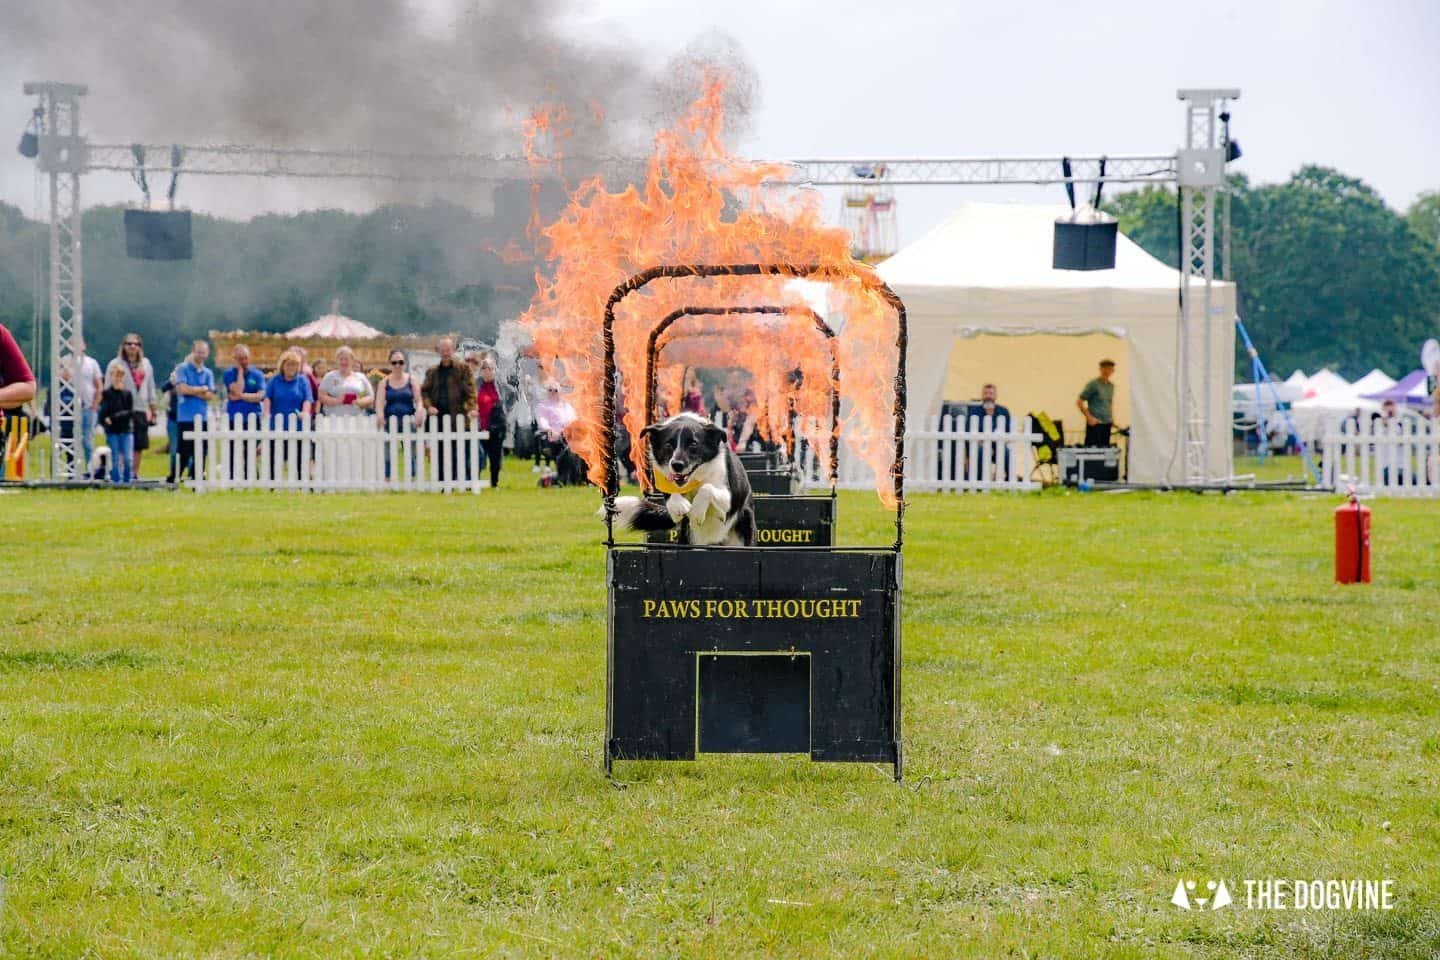 Dogstival New Forest Dog Festival Is A Barking Success - Paws for Thought Dog Display Team 1